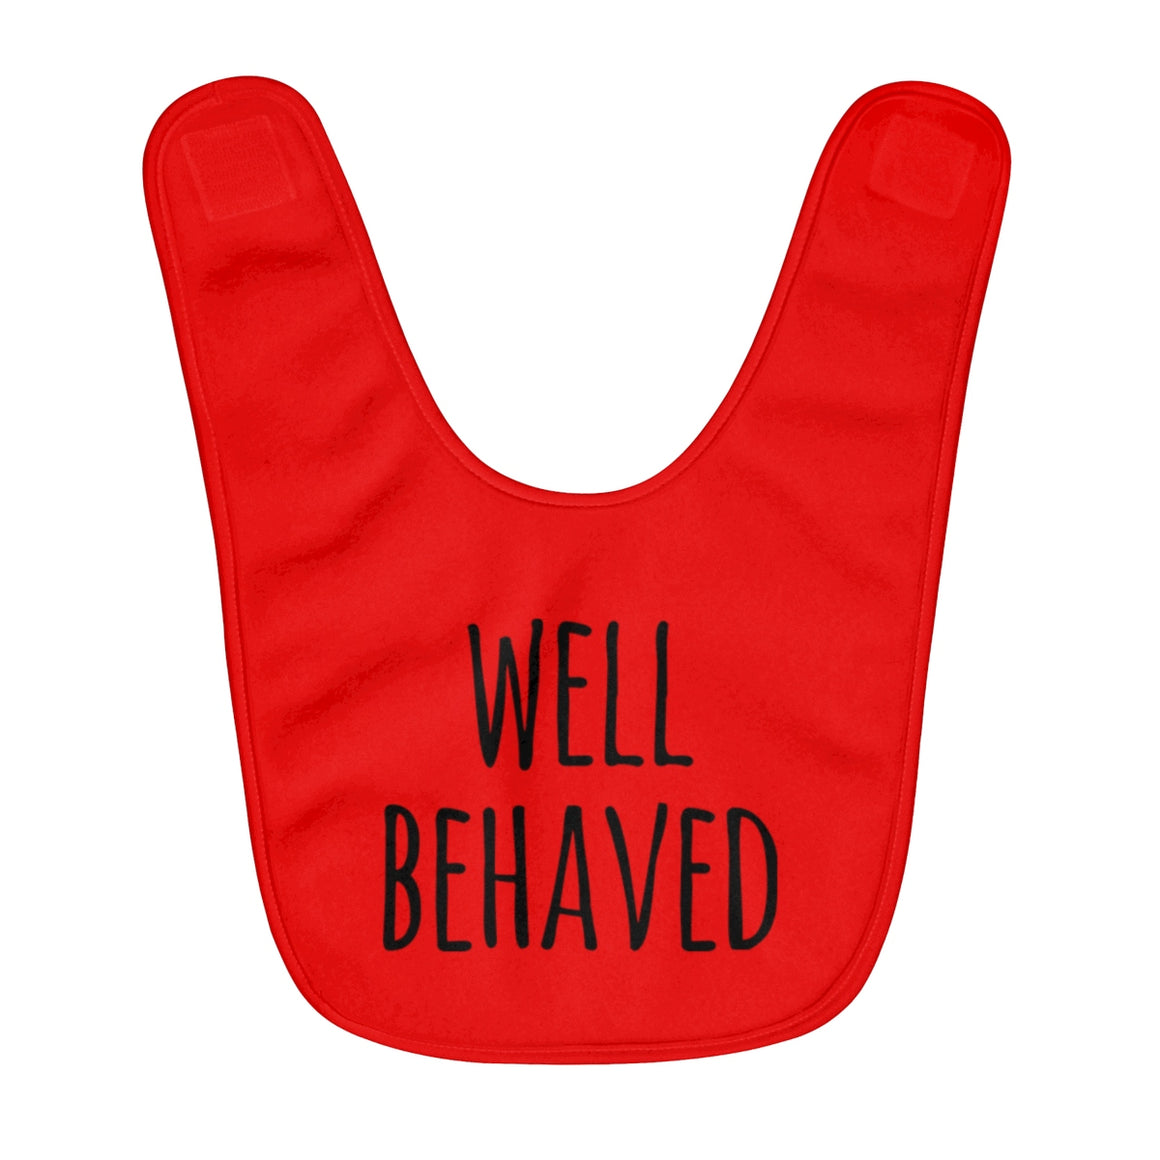 Well Behaved Baby Bib